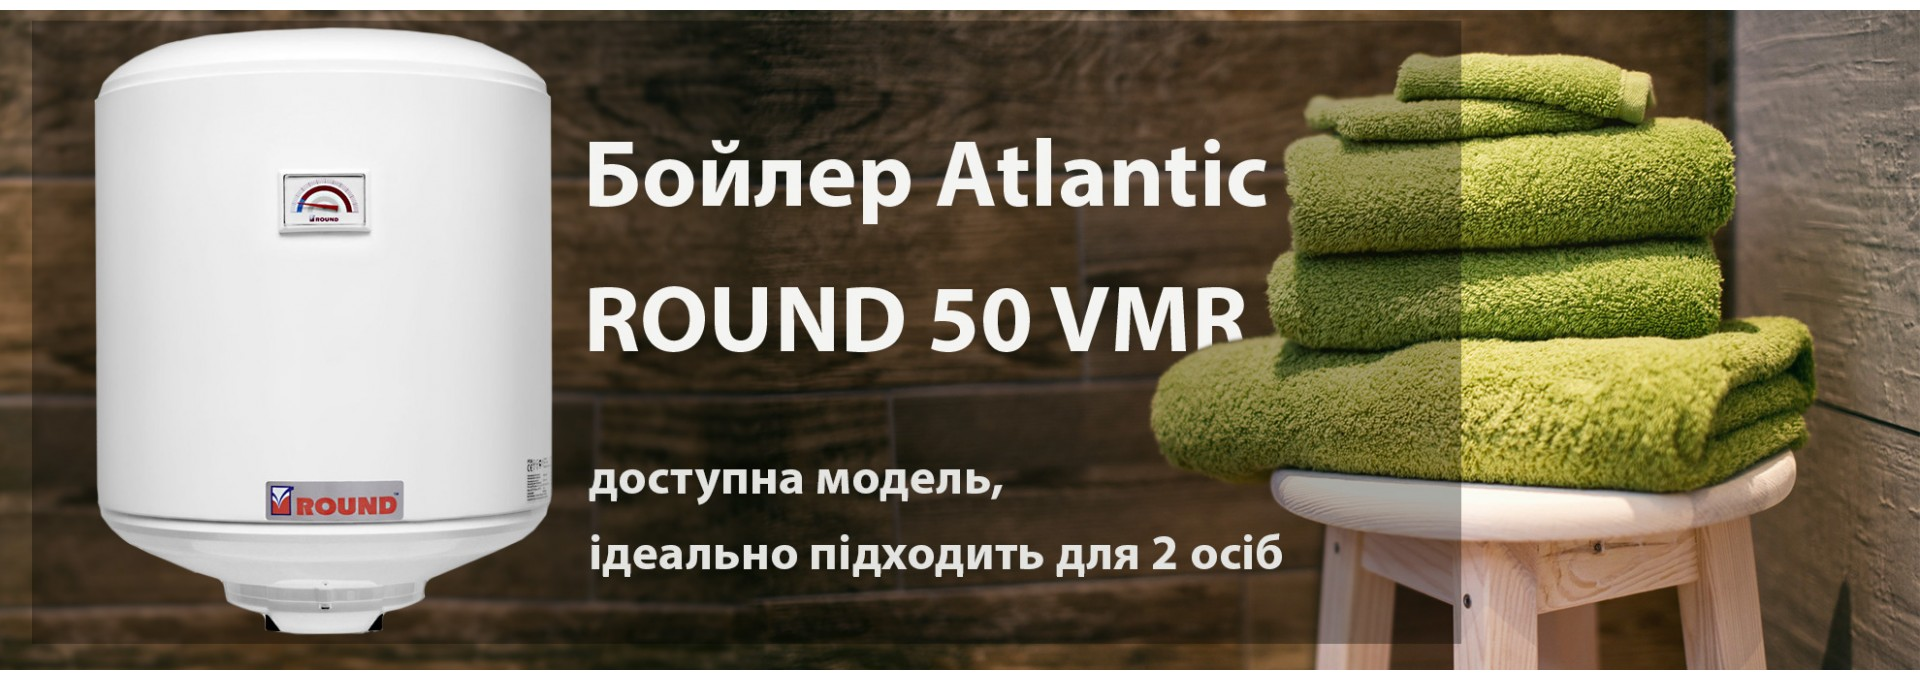 Бойлер Atlantic ROUND 50 VMR